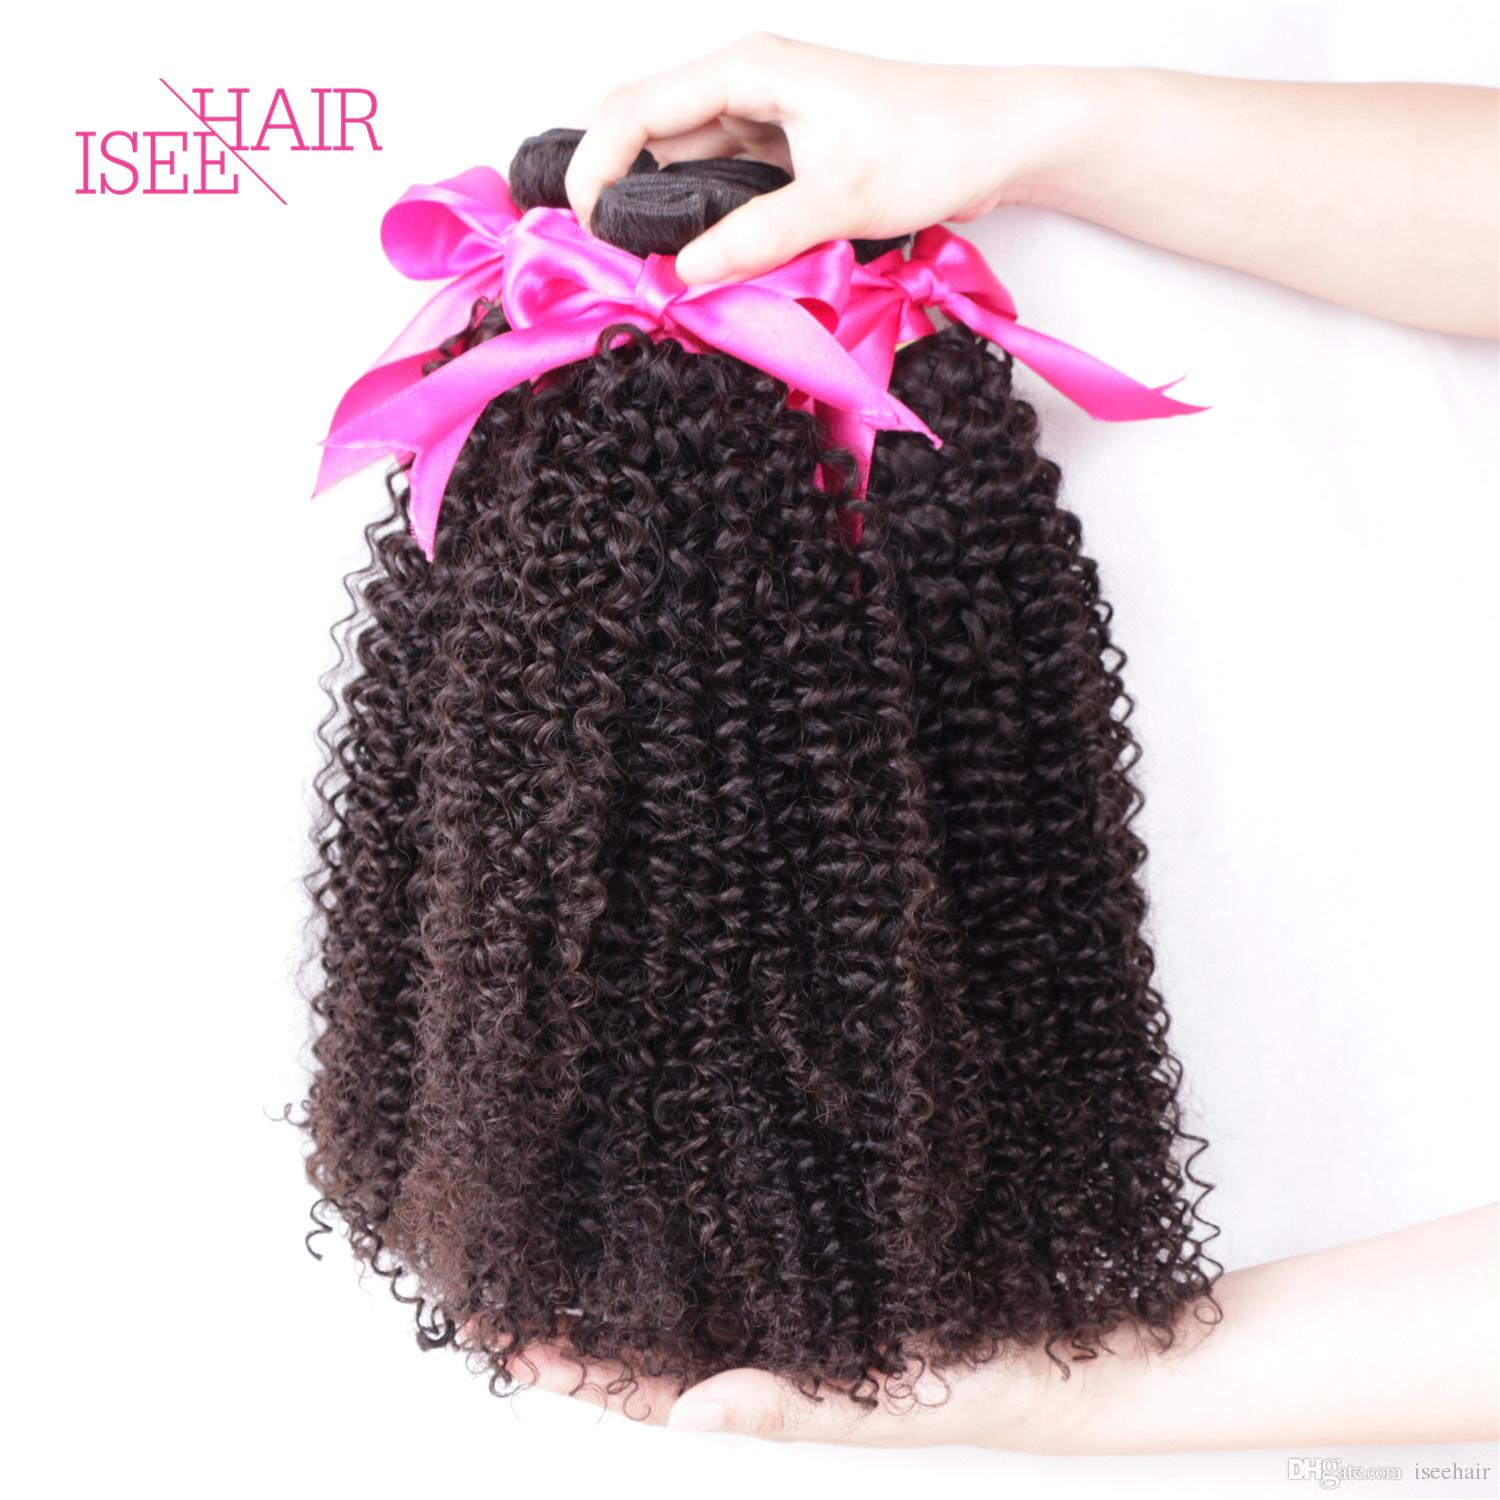 Cheap brazilian curly virgin hair weaves best 8a brazilian curly cheap brazilian curly virgin hair weaves best 8a brazilian curly human hair weave curly weave hairstyles unprocessed human hair weft extensions uk wefted pmusecretfo Image collections